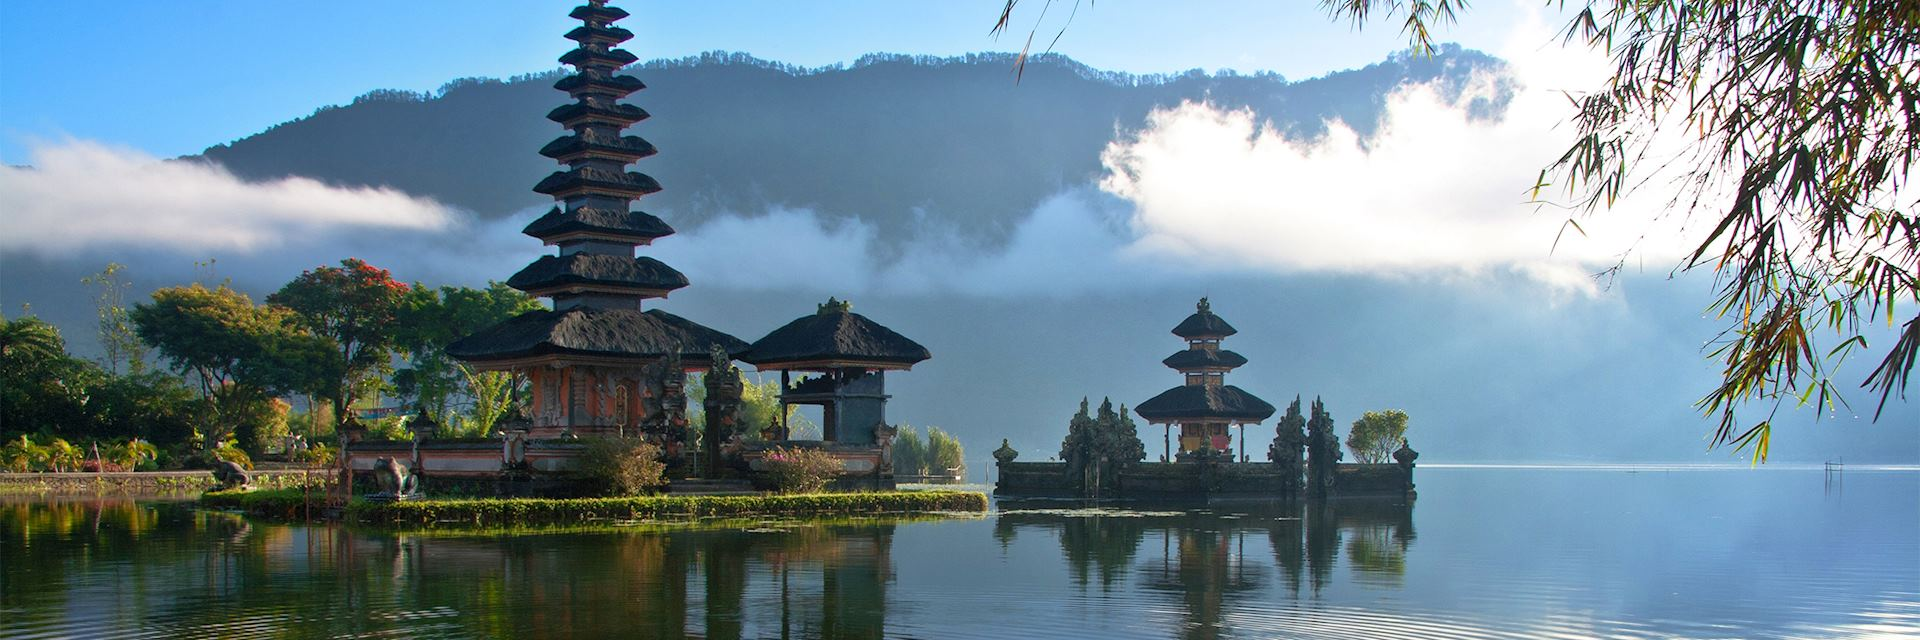 Peaceful lake, Bali, Indonesia